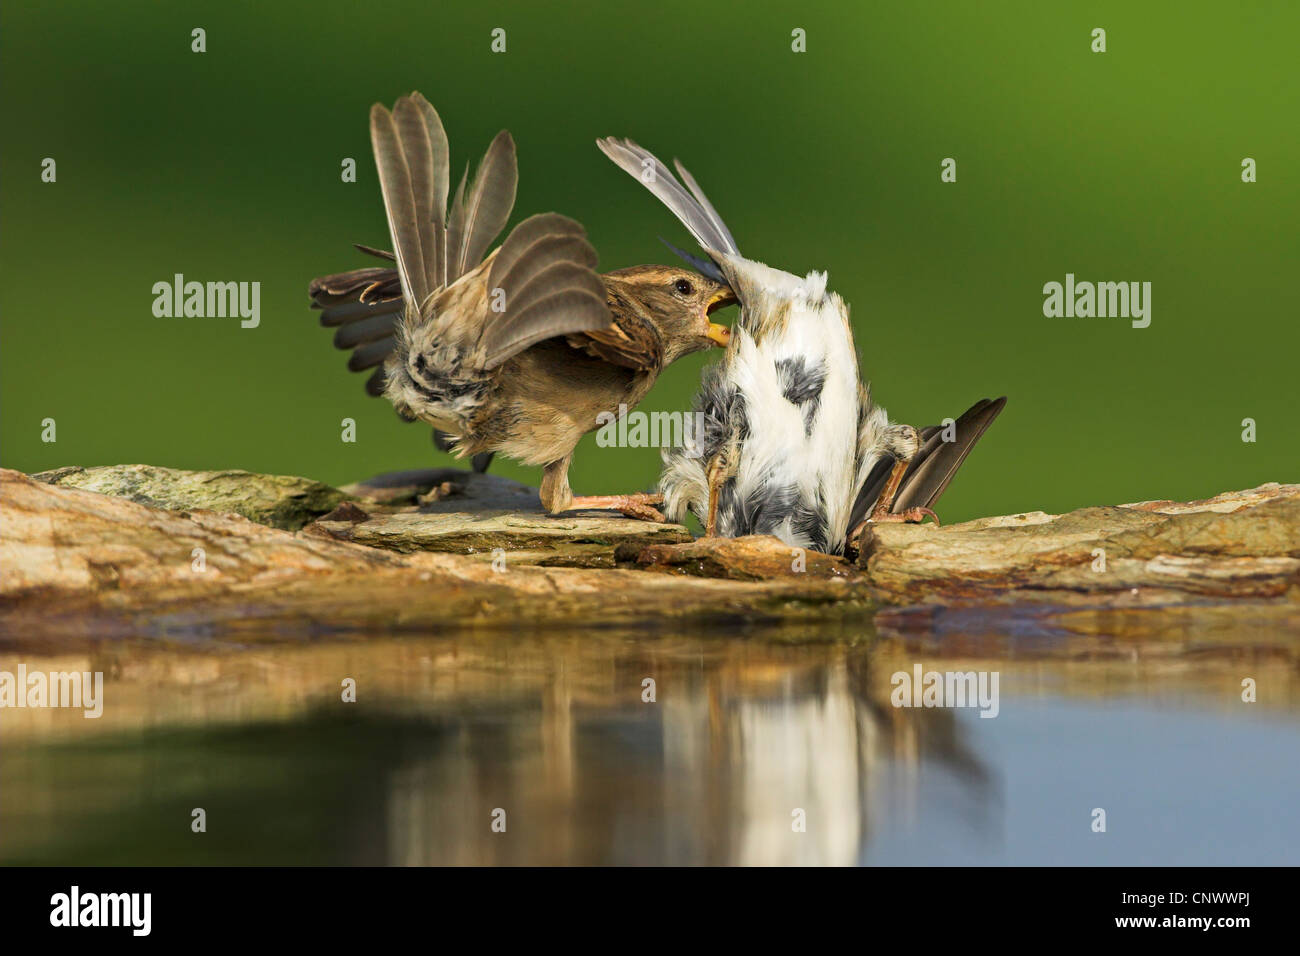 house sparrow (Passer domesticus), two rivals fighting at a water place, Germany, Rhineland-Palatinate - Stock Image